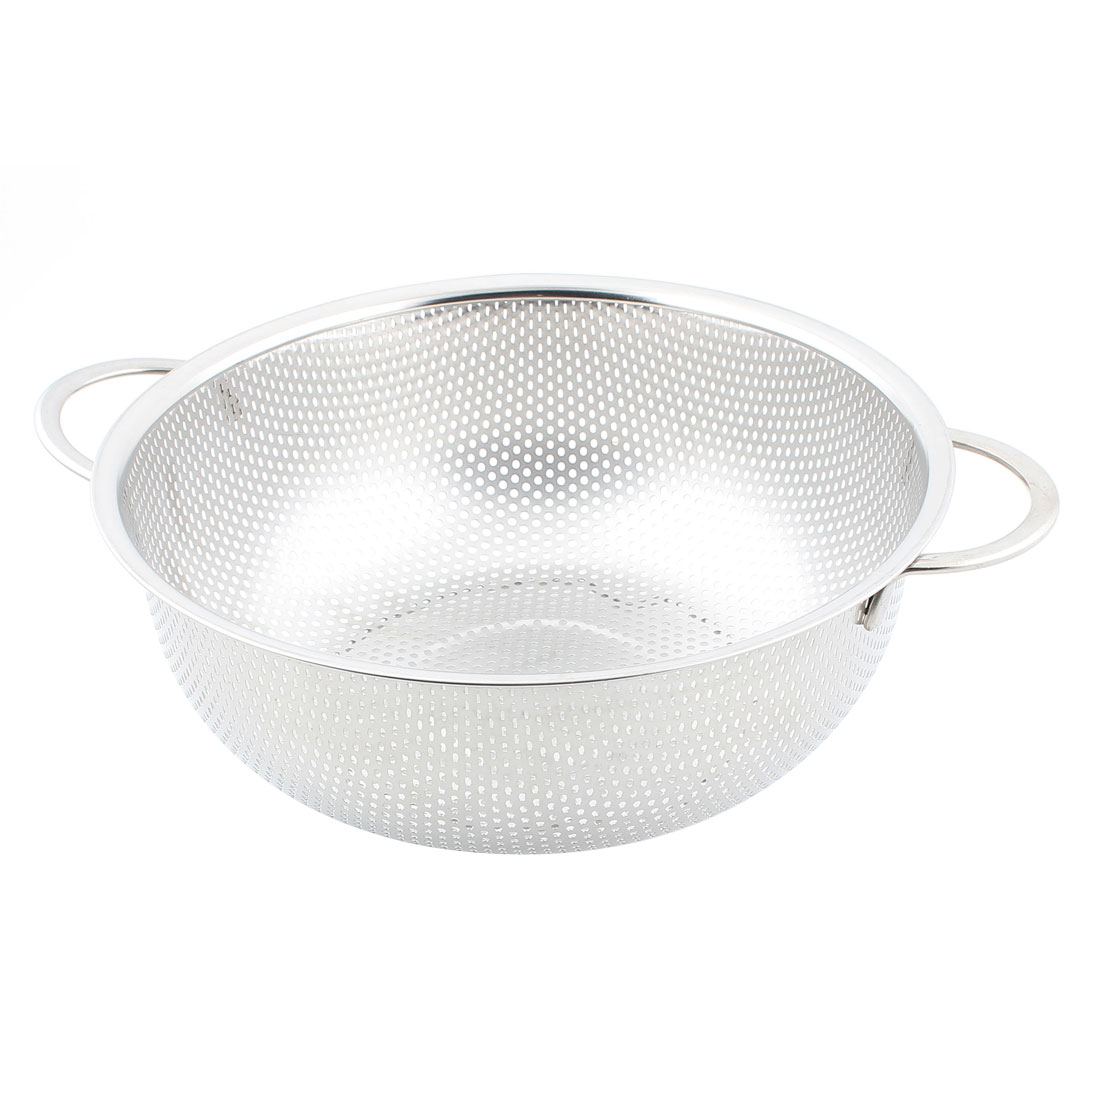 Metal Round Fry Food Fruit Vegetable Washing Basket Strainer 22.5cm Dia